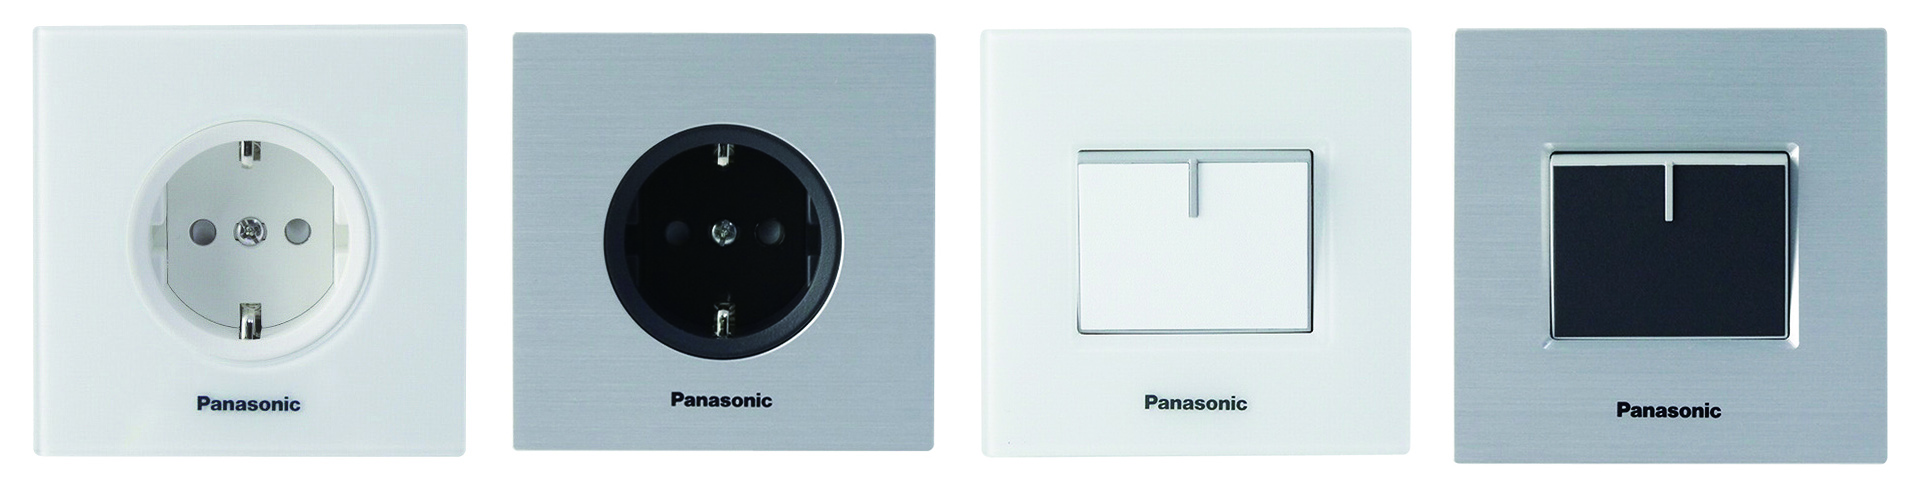 Is Your Electrical Wiring Safe Panasonic Asia Pacific Up Outlets Fast Forward Almost A Century Continues To Recognise The Importance Quality In Its Devices Line